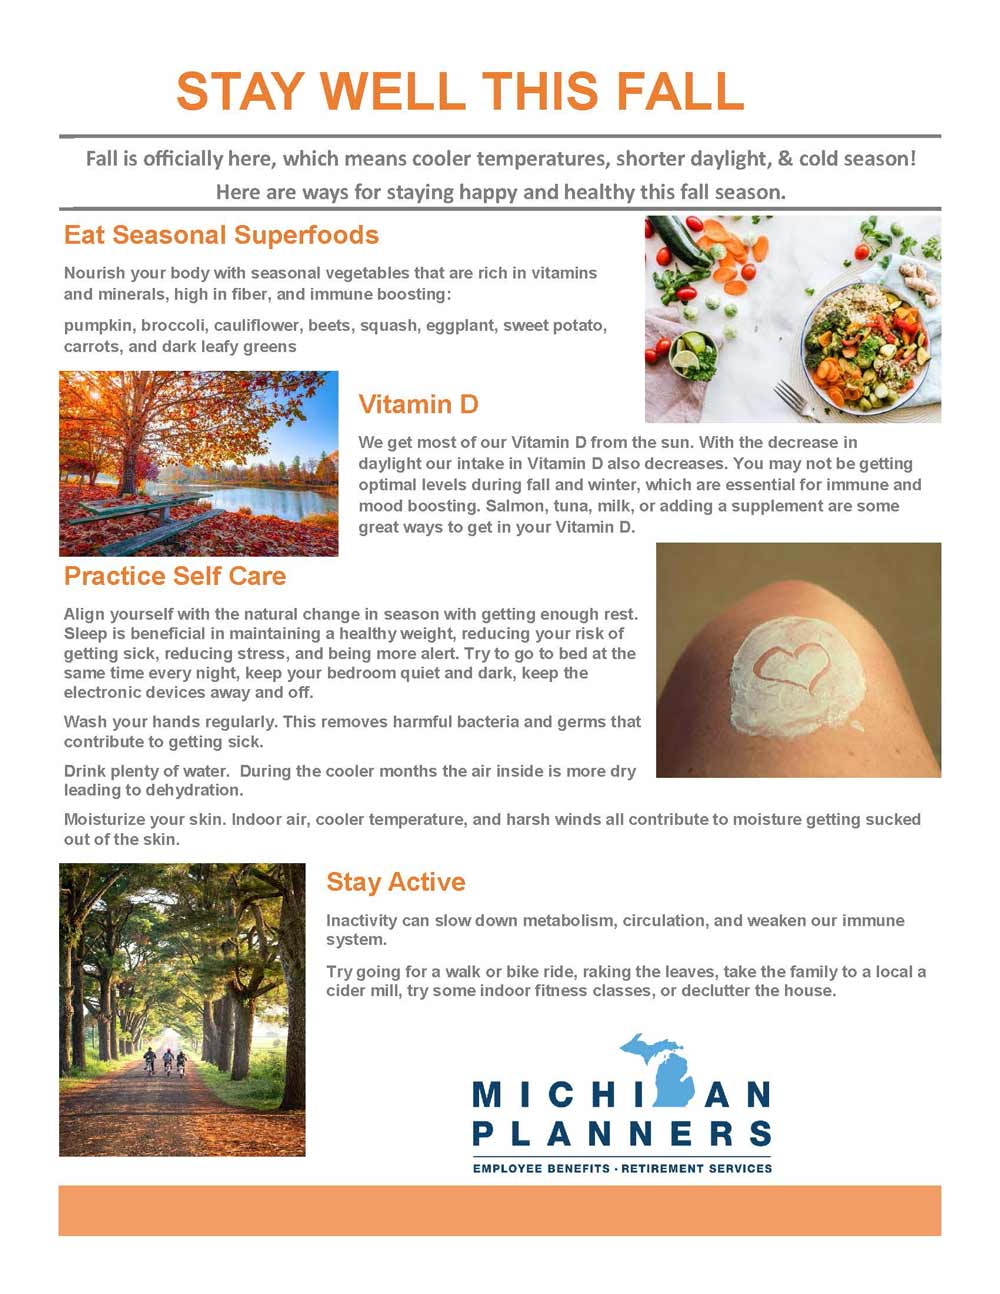 Stay Well This Fall Mi Planners Insurance